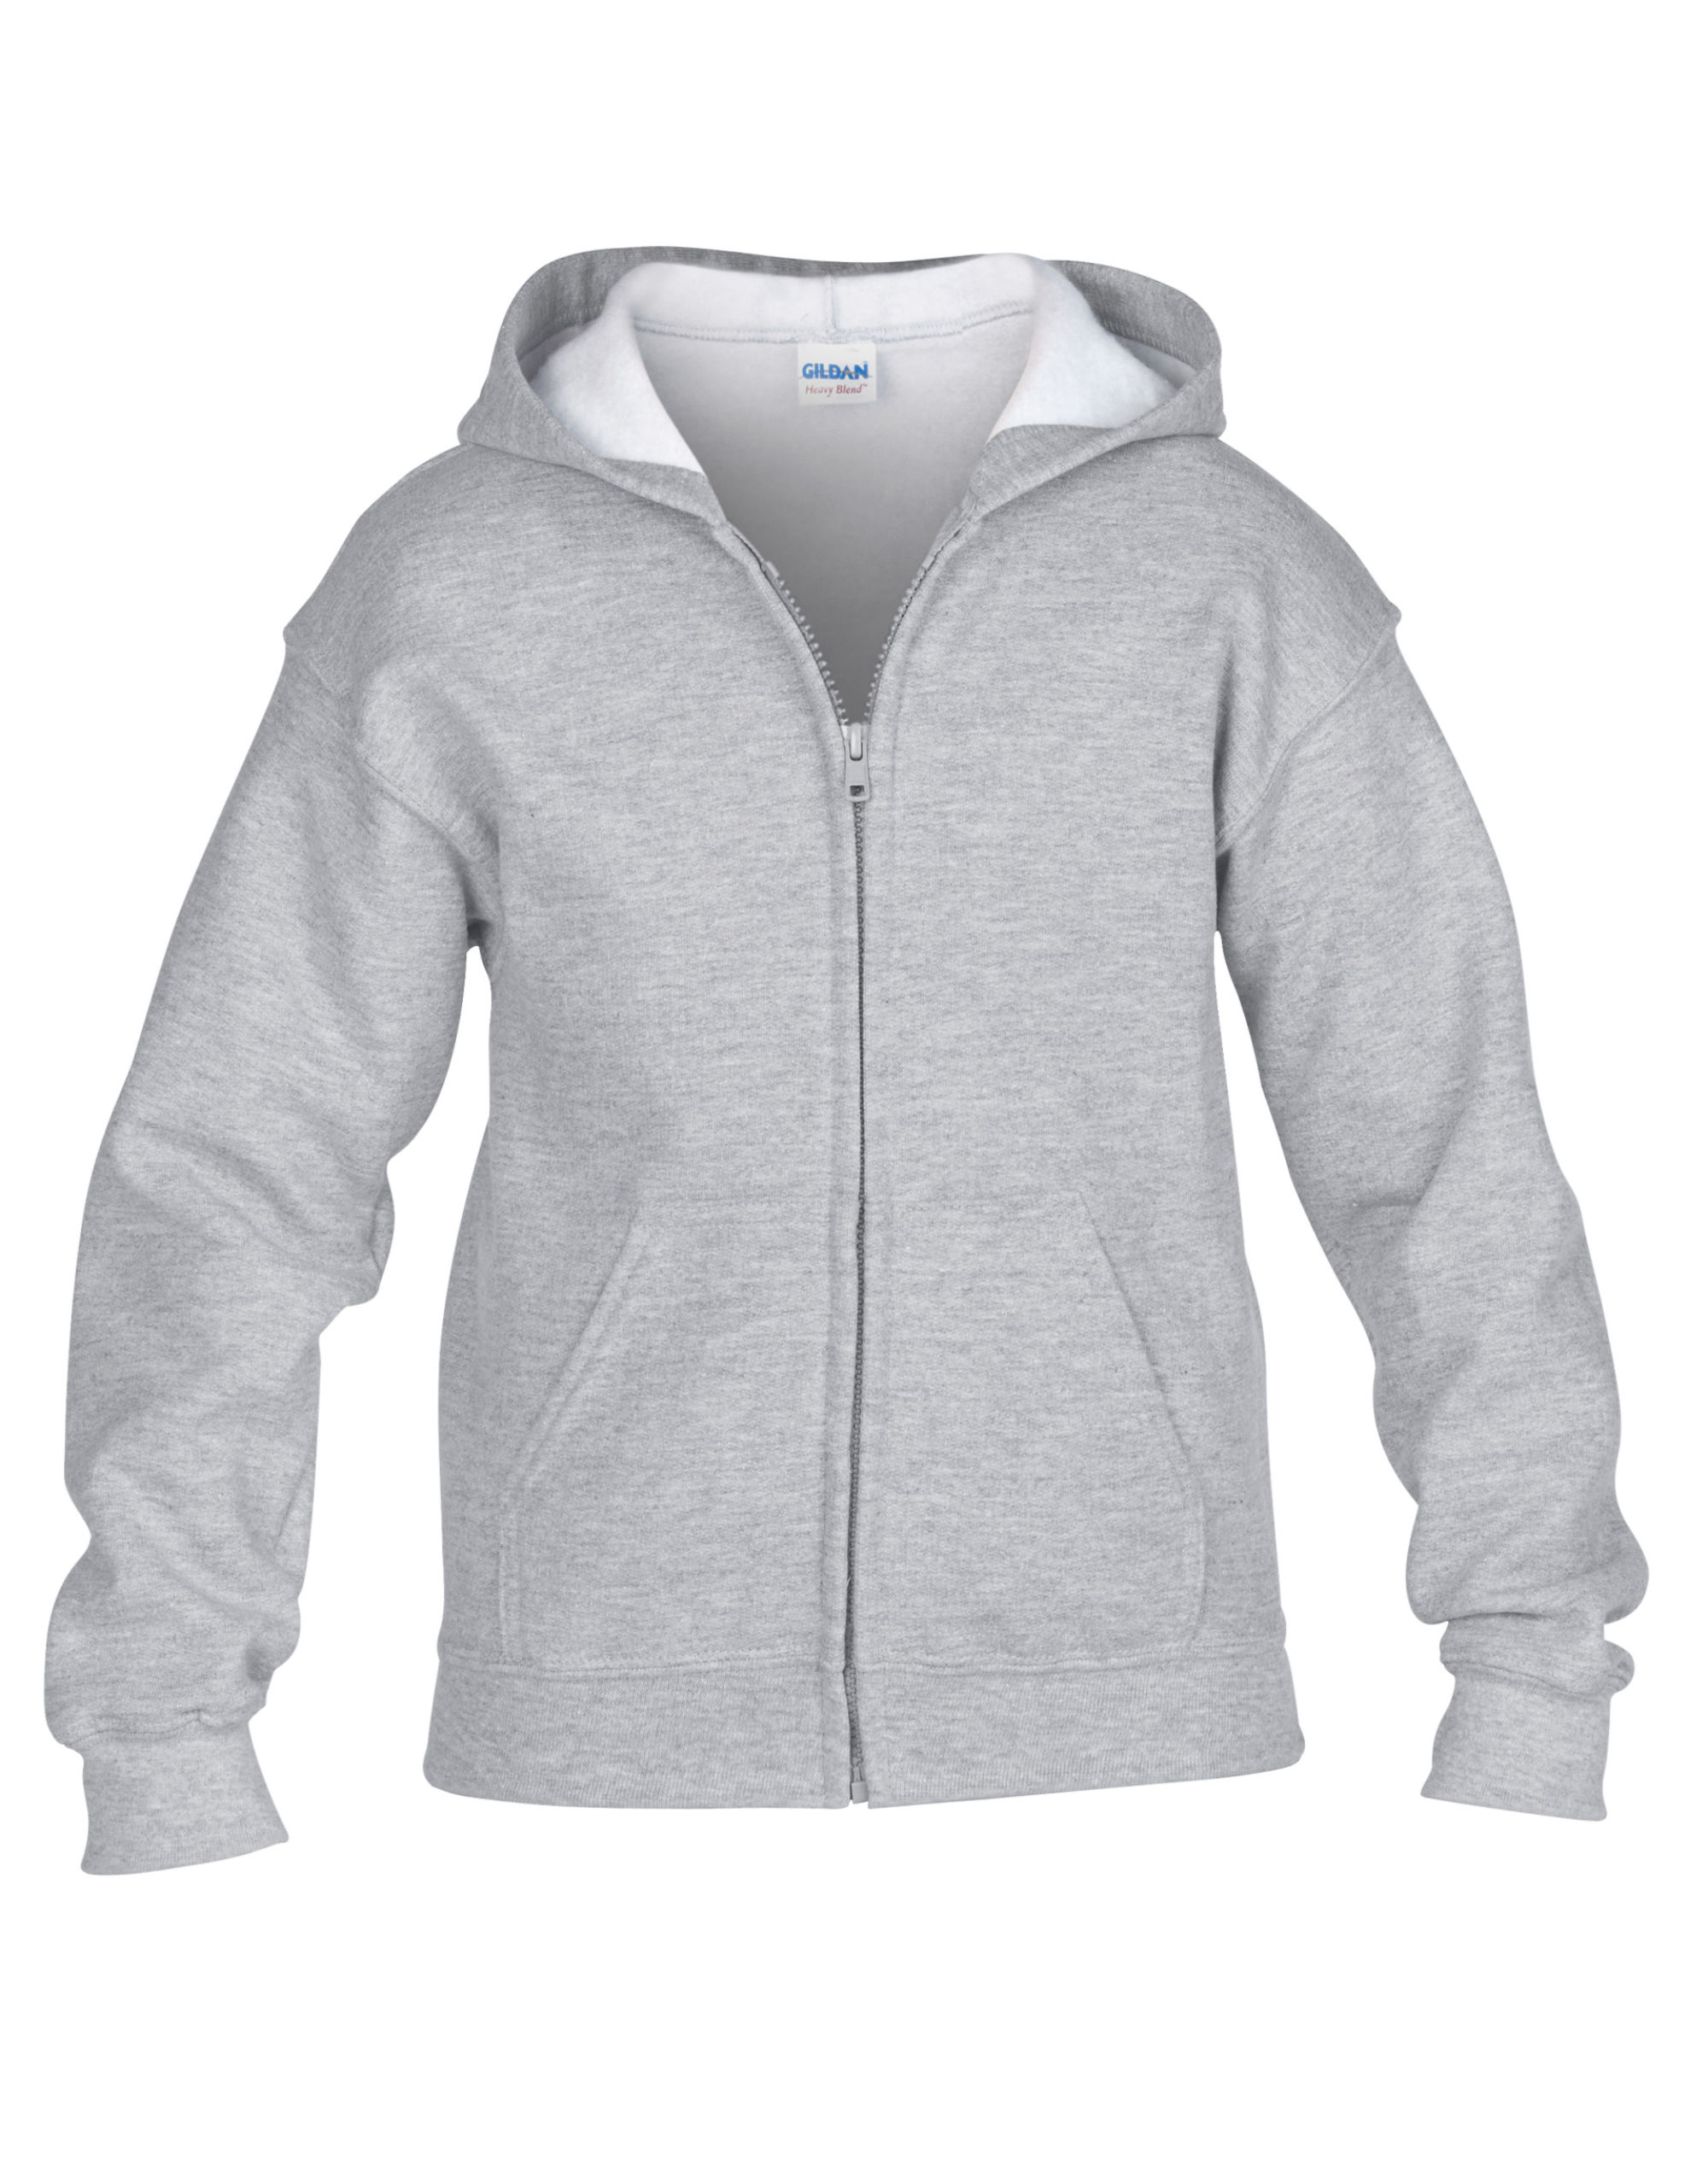 Children's Zipped Hooded Sweat